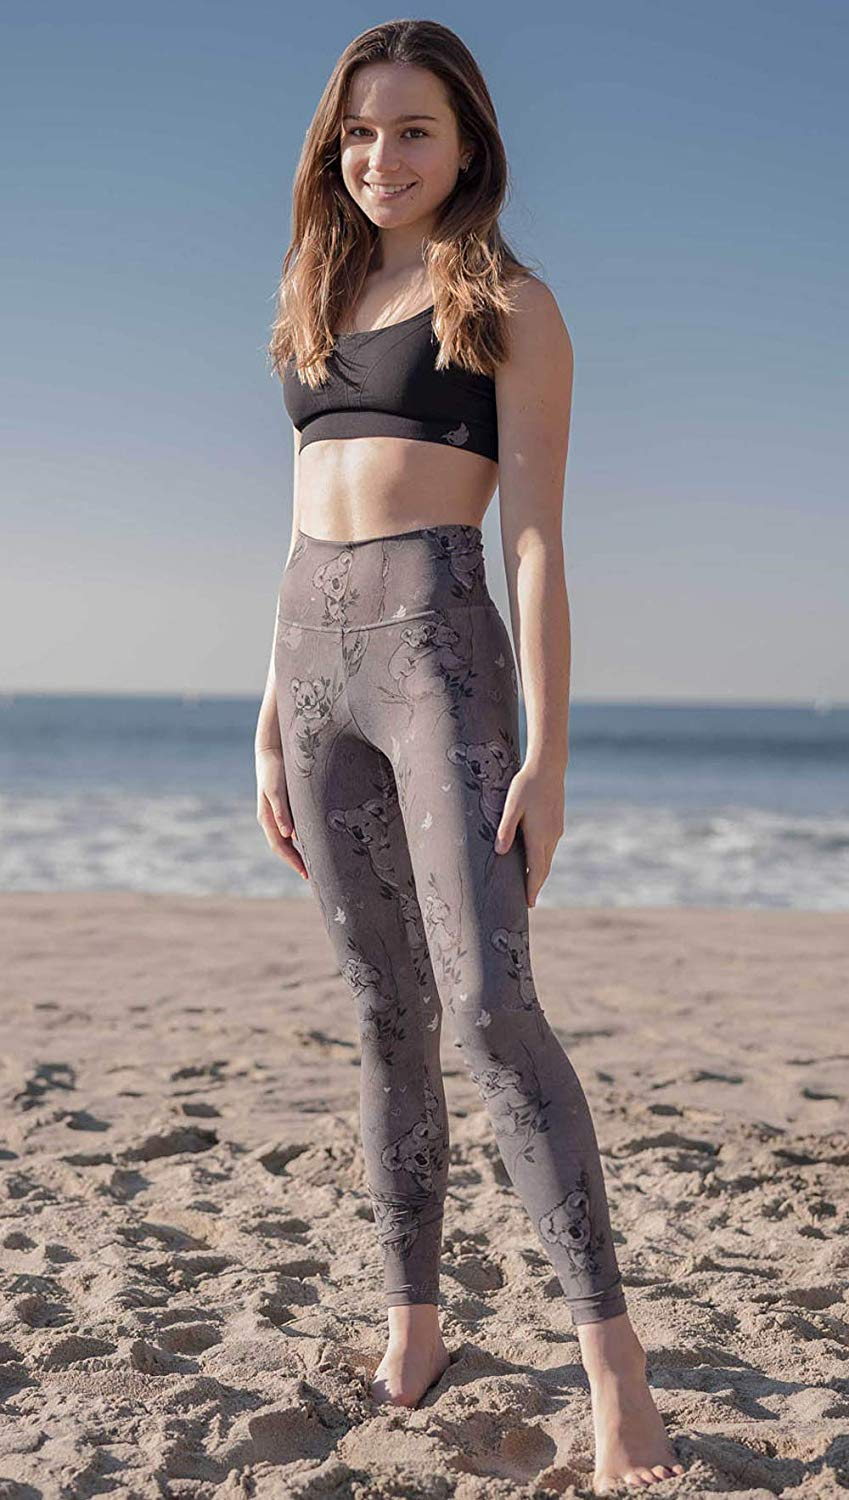 koala-leggings girl at the beach modeling leggings